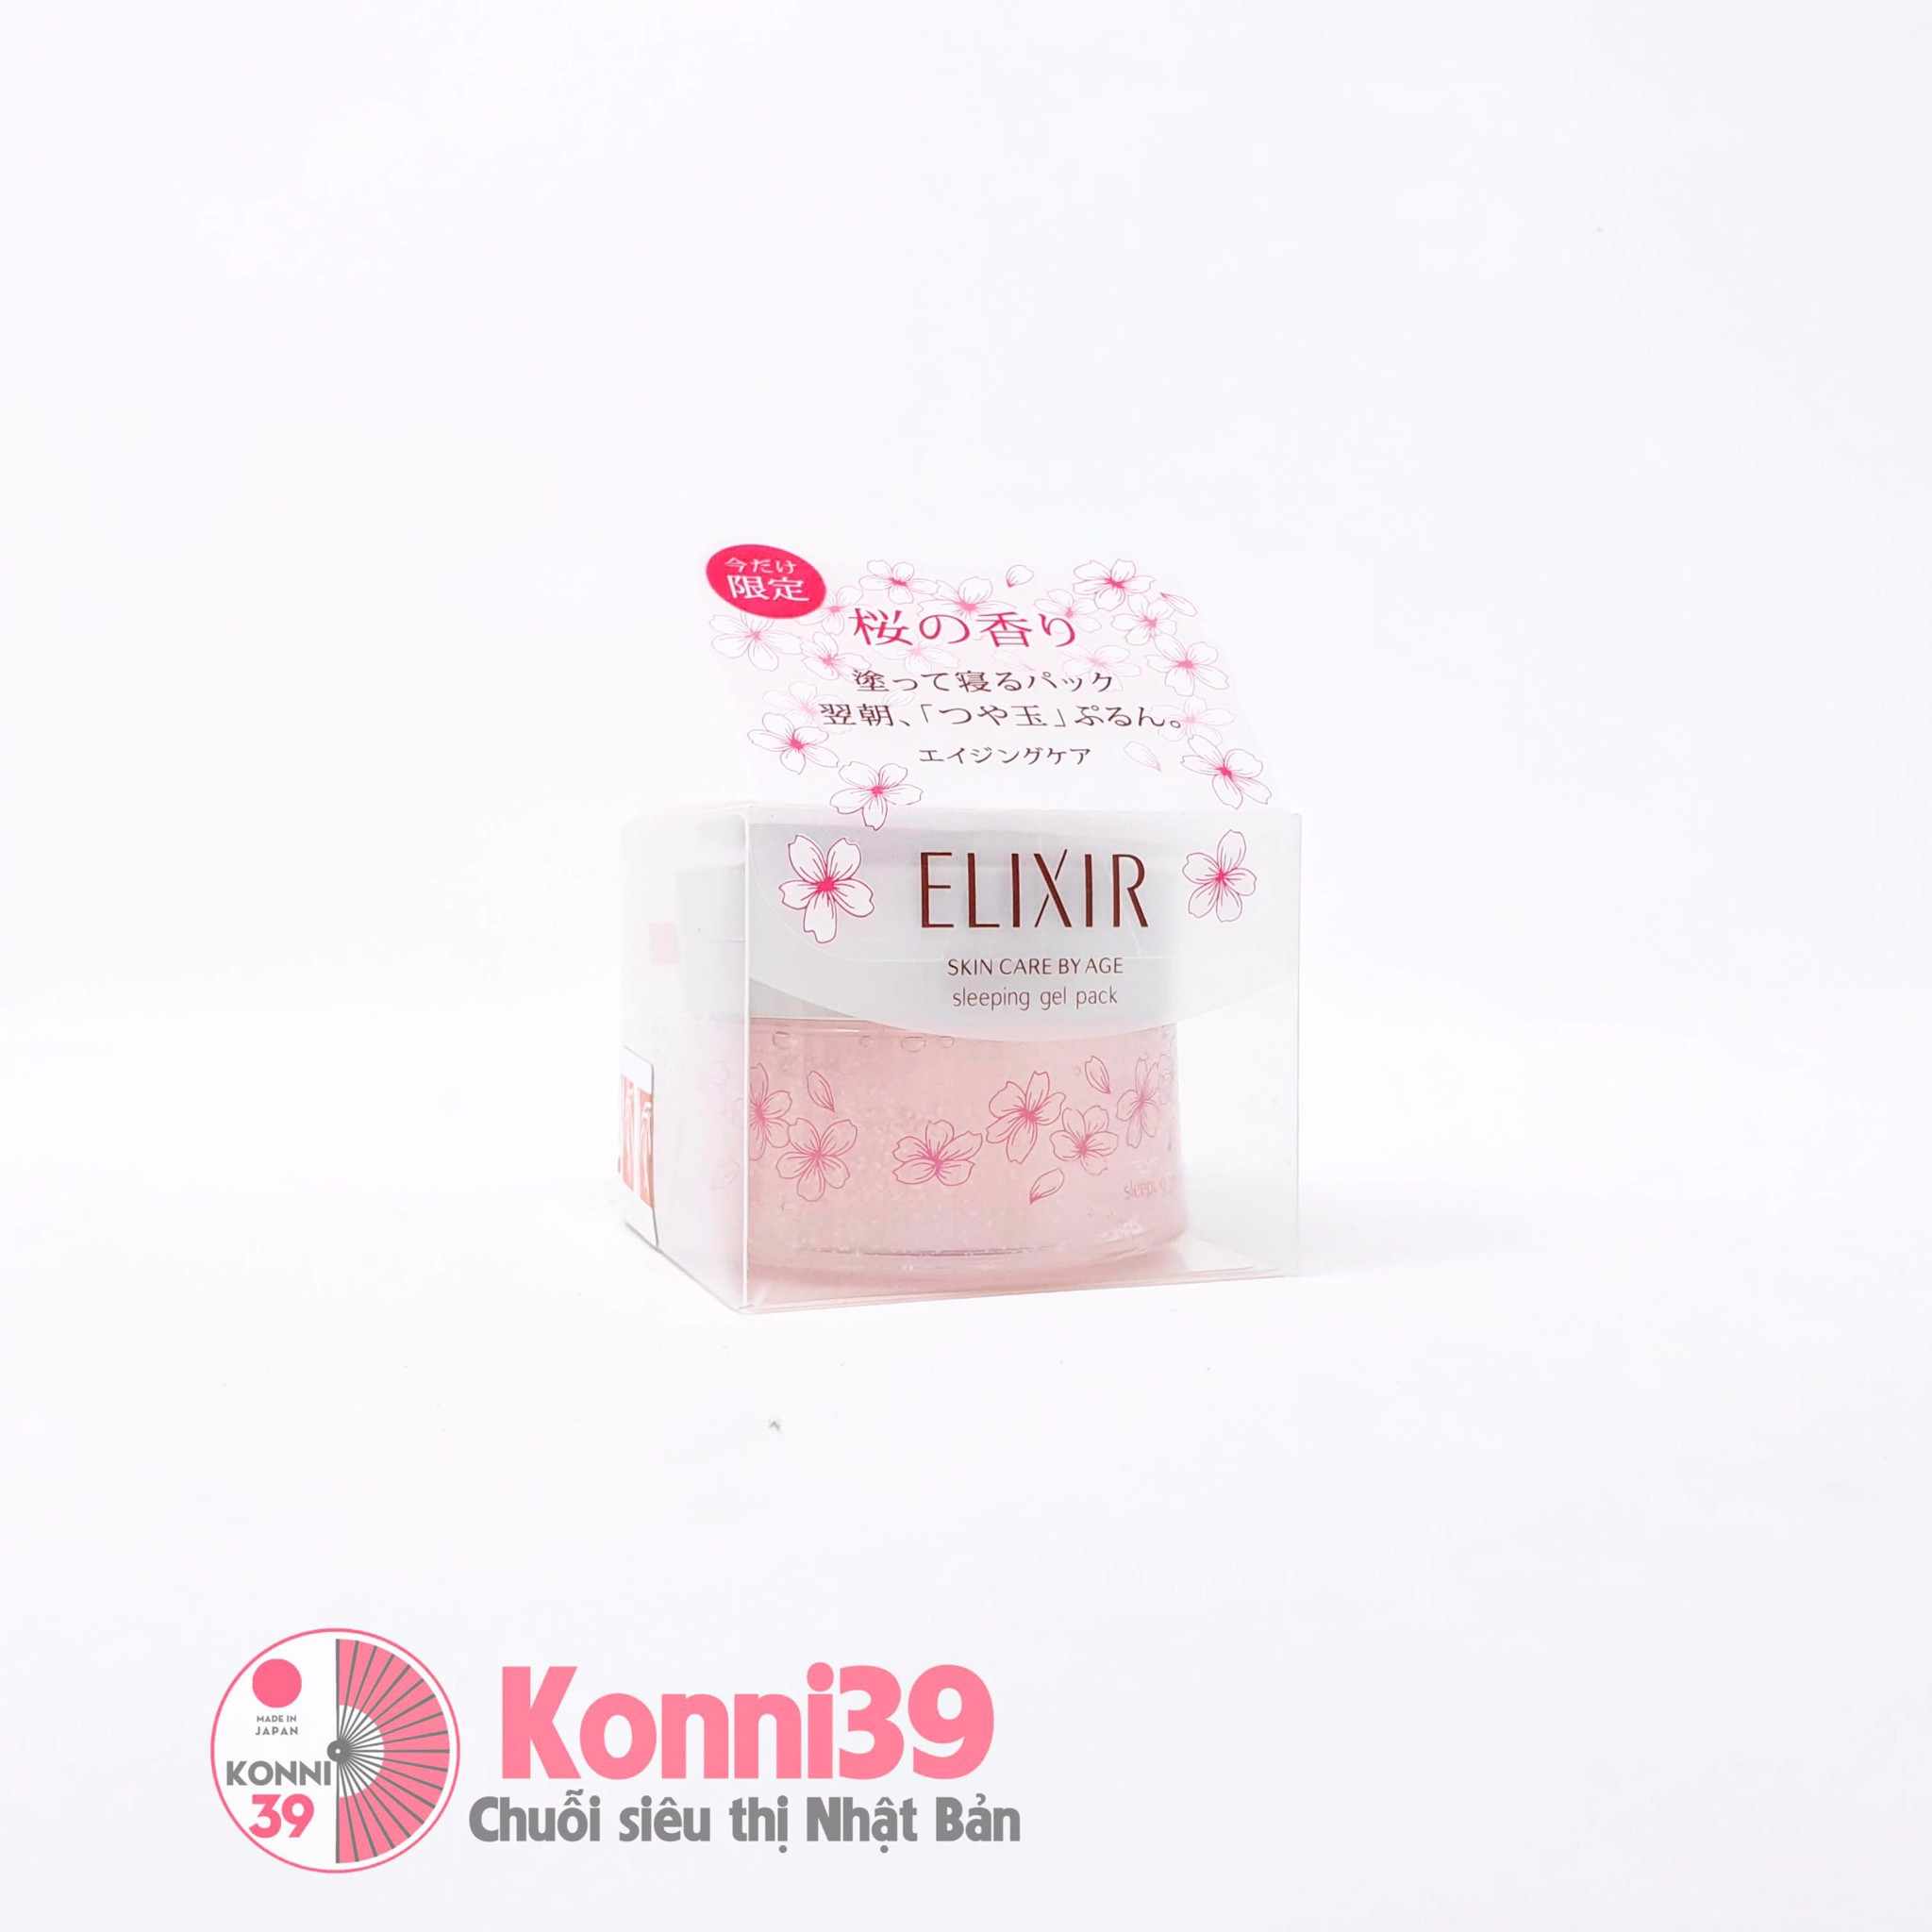 Mặt nạ ngủ EXLIXIR Skin Care by Age Sleeping Gel Pack 105g